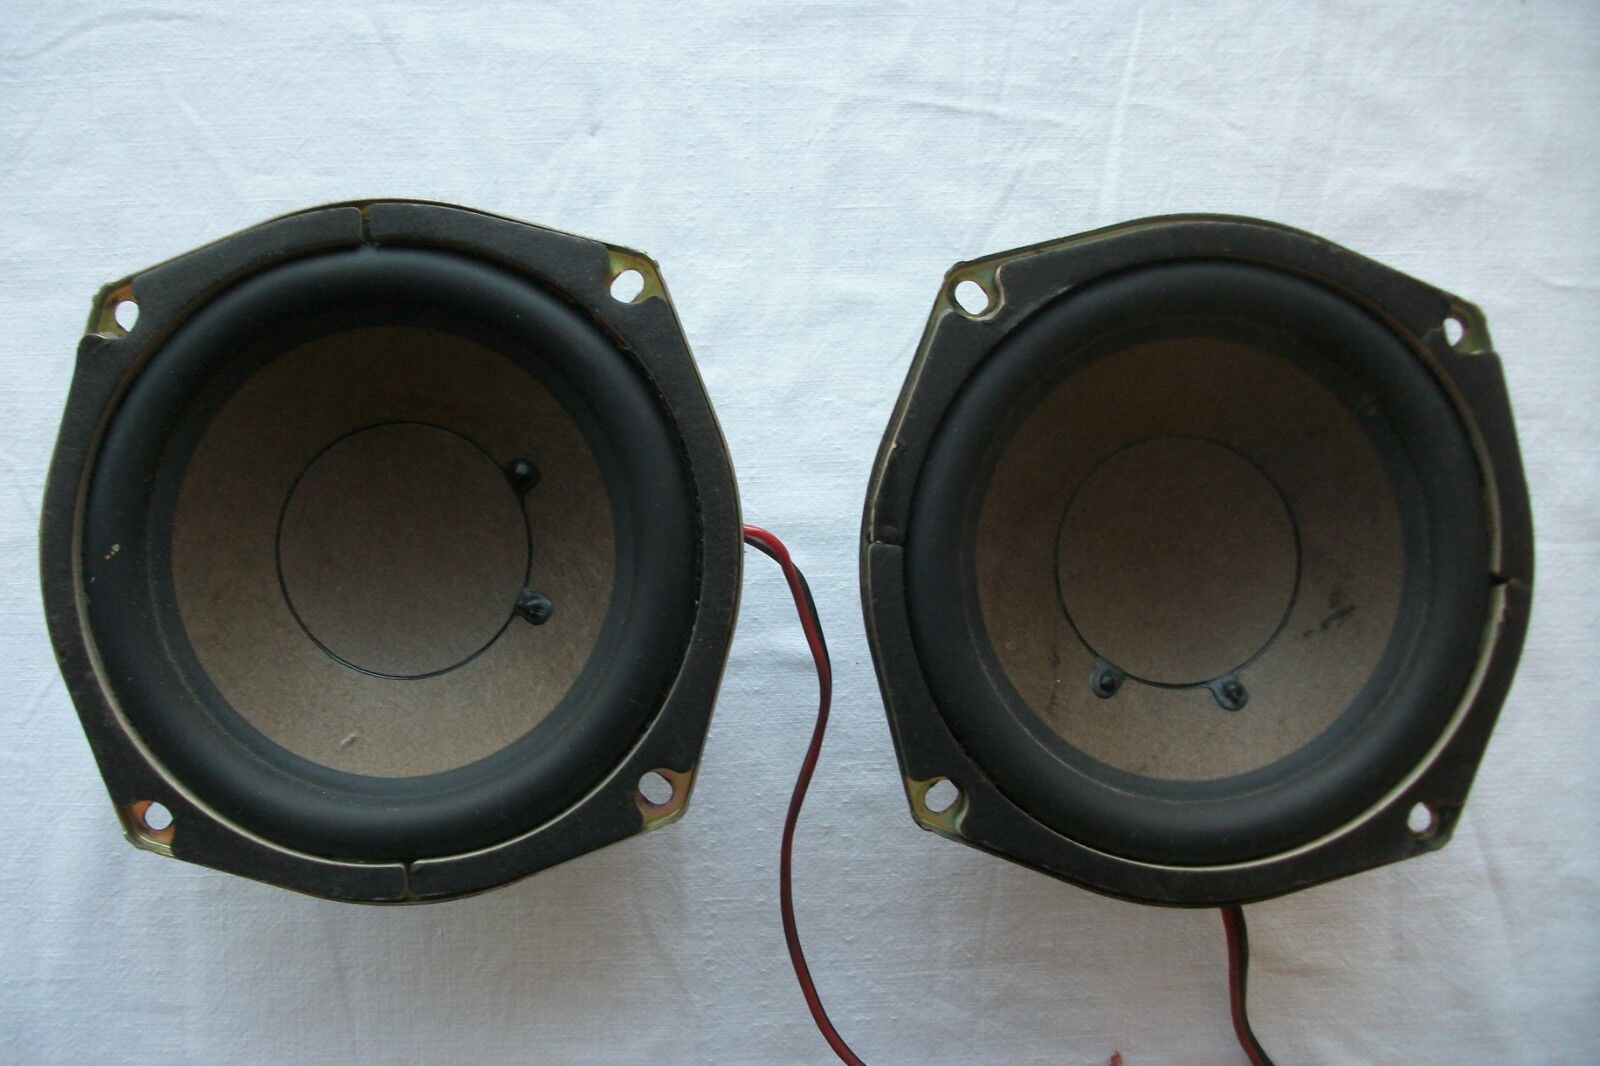 Sony 1-529-260-11 IST 1087,  a pair of well working 4-inch subwoofers